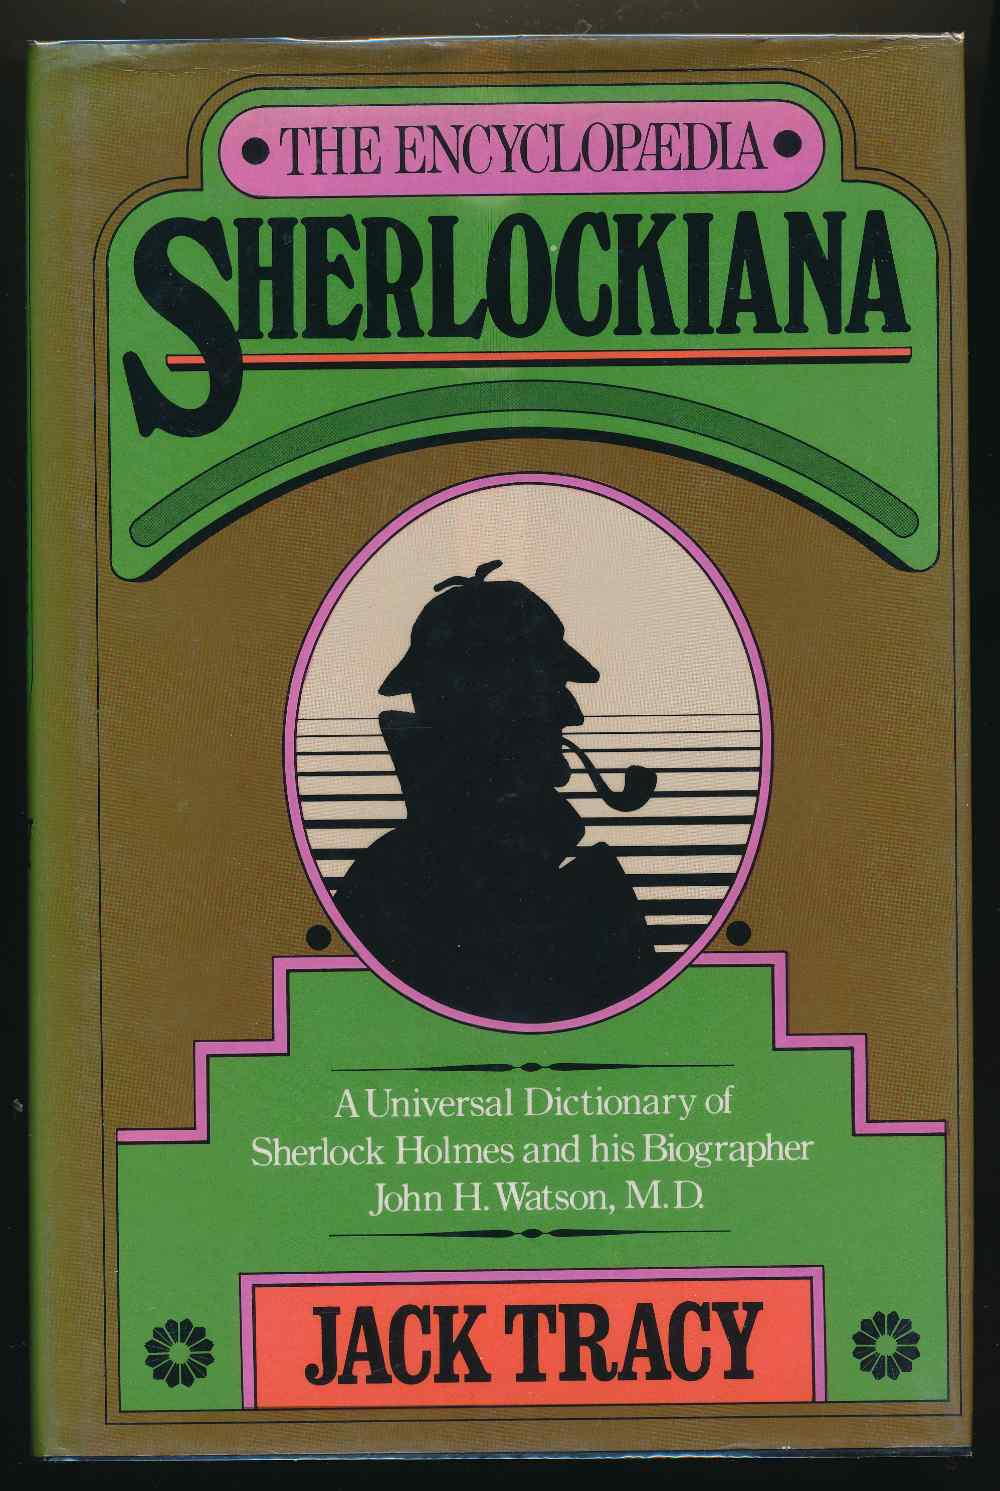 The encyclopaedia Sherlockiana, or, A universal dictionary of Sherlock Holmes and his biographer, Dr. John H. Watson